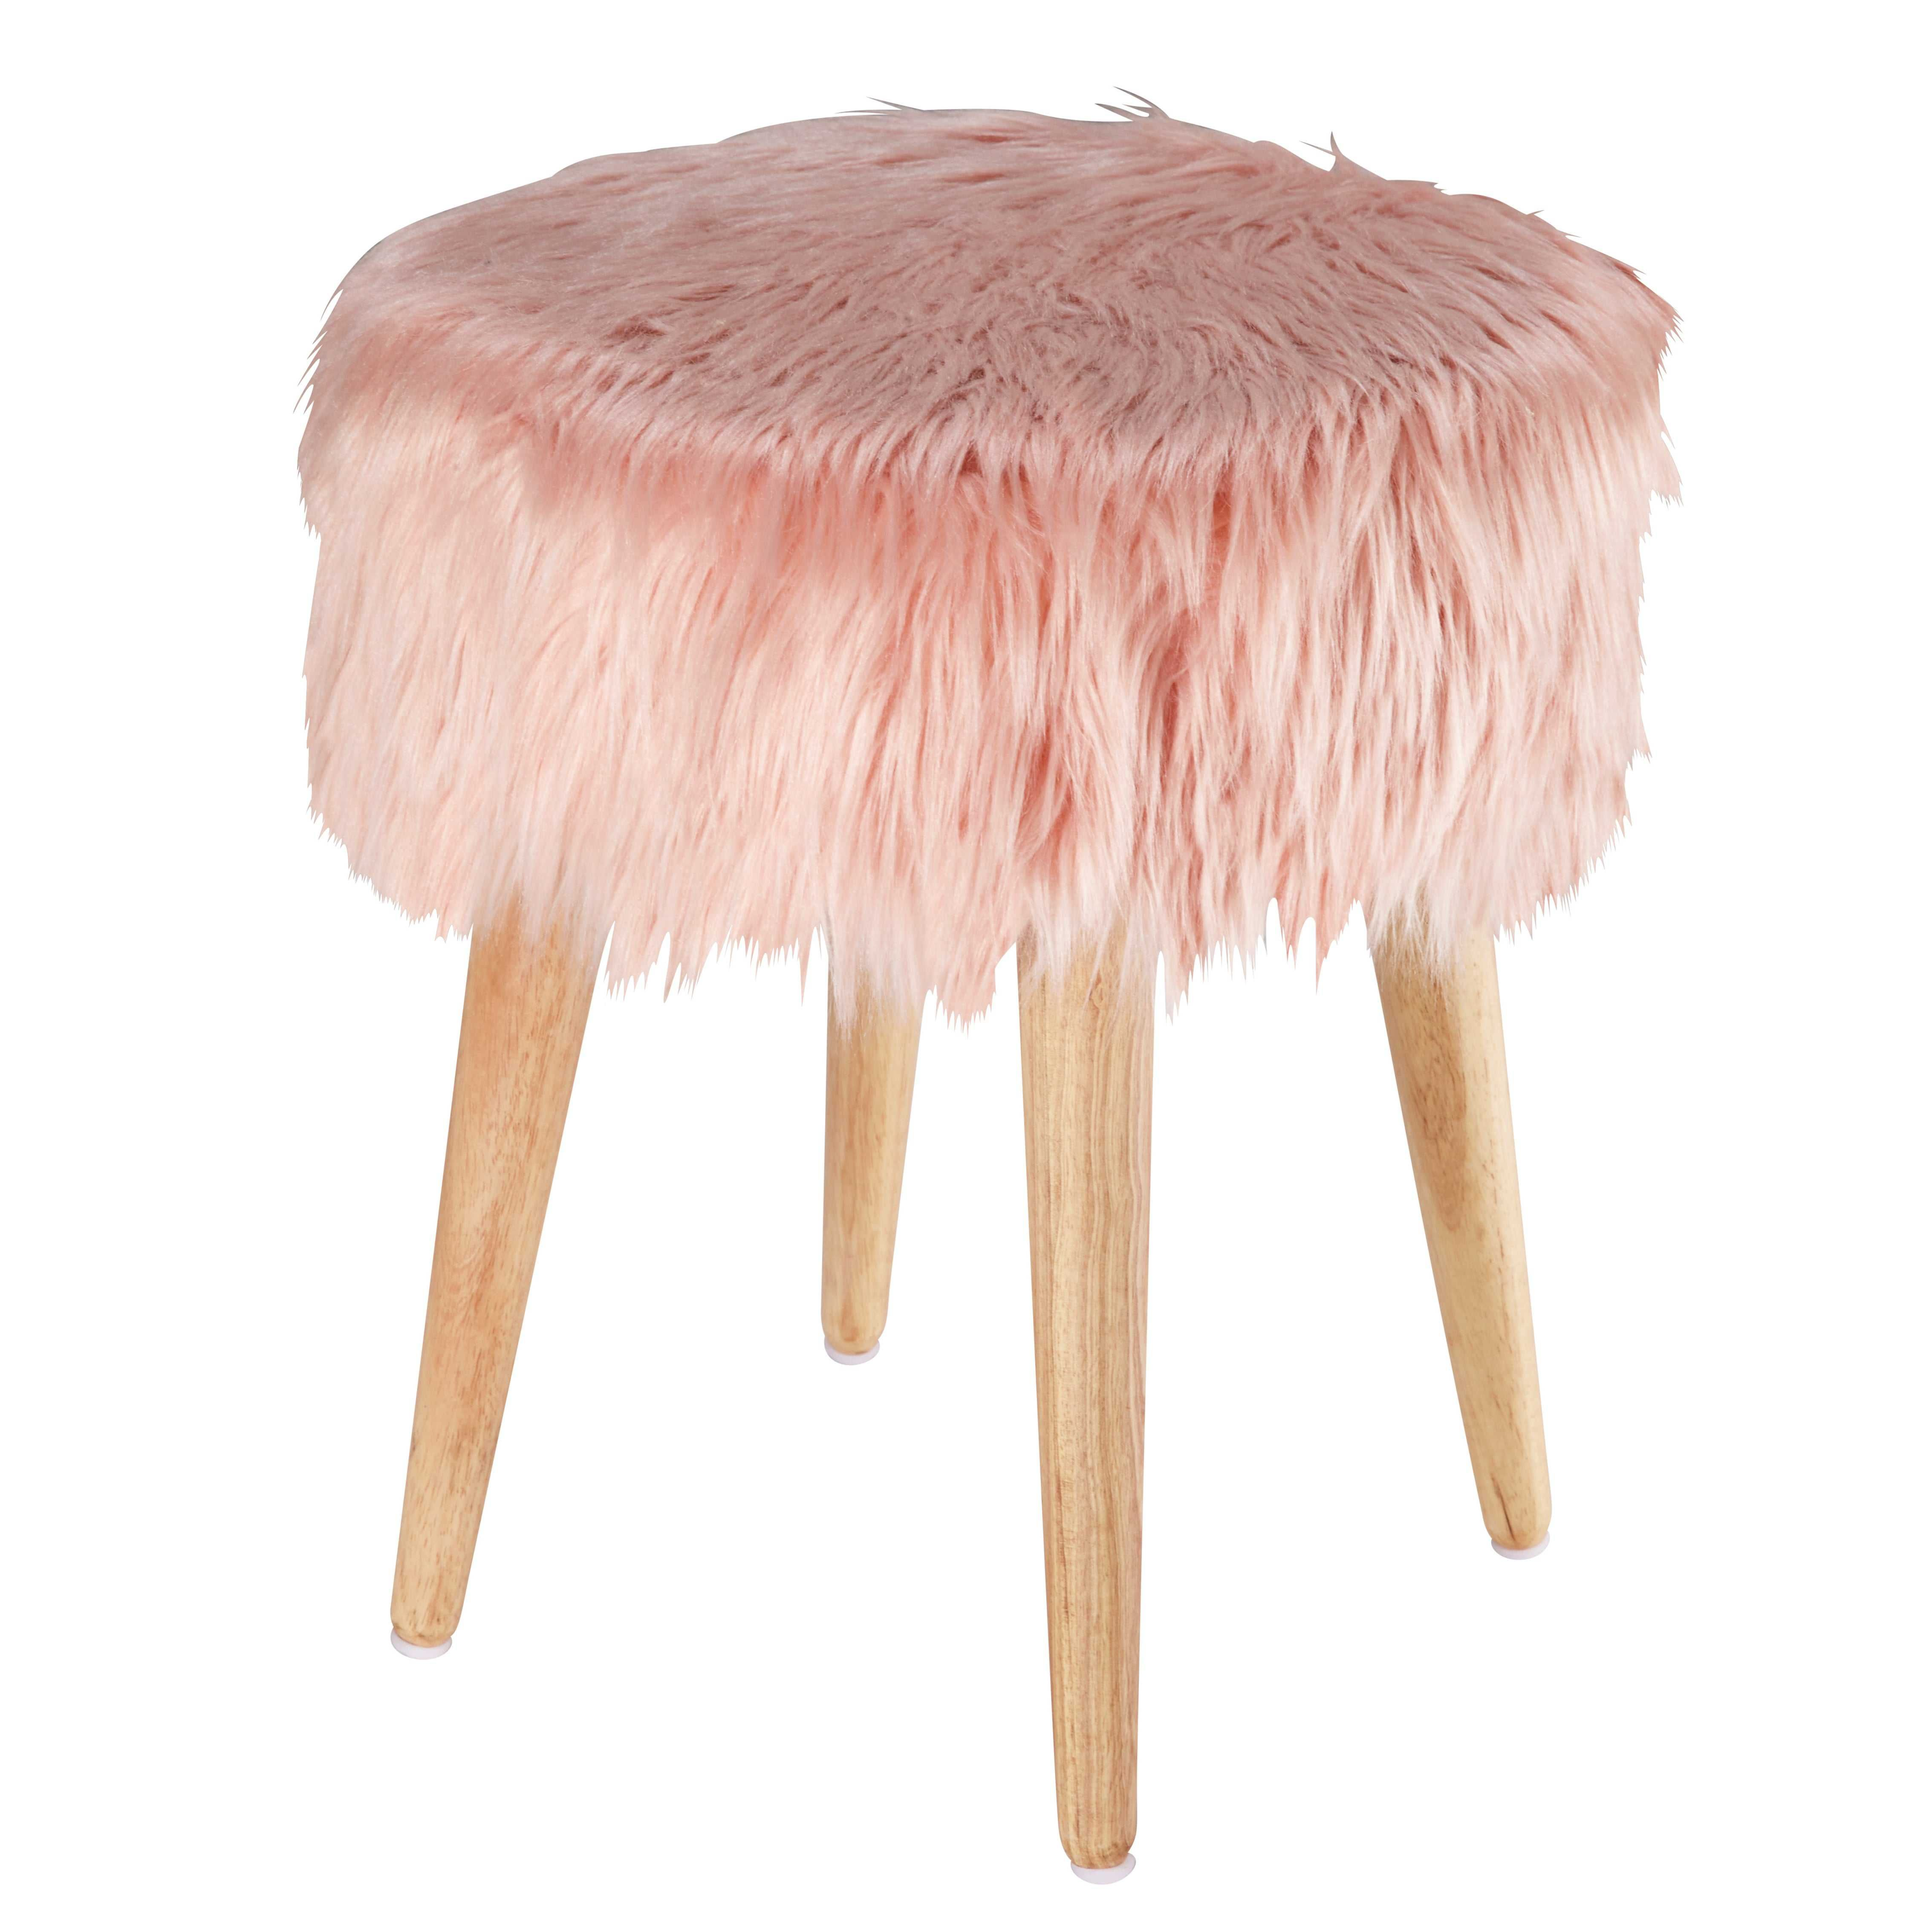 Tabouret assise fausse fourrure